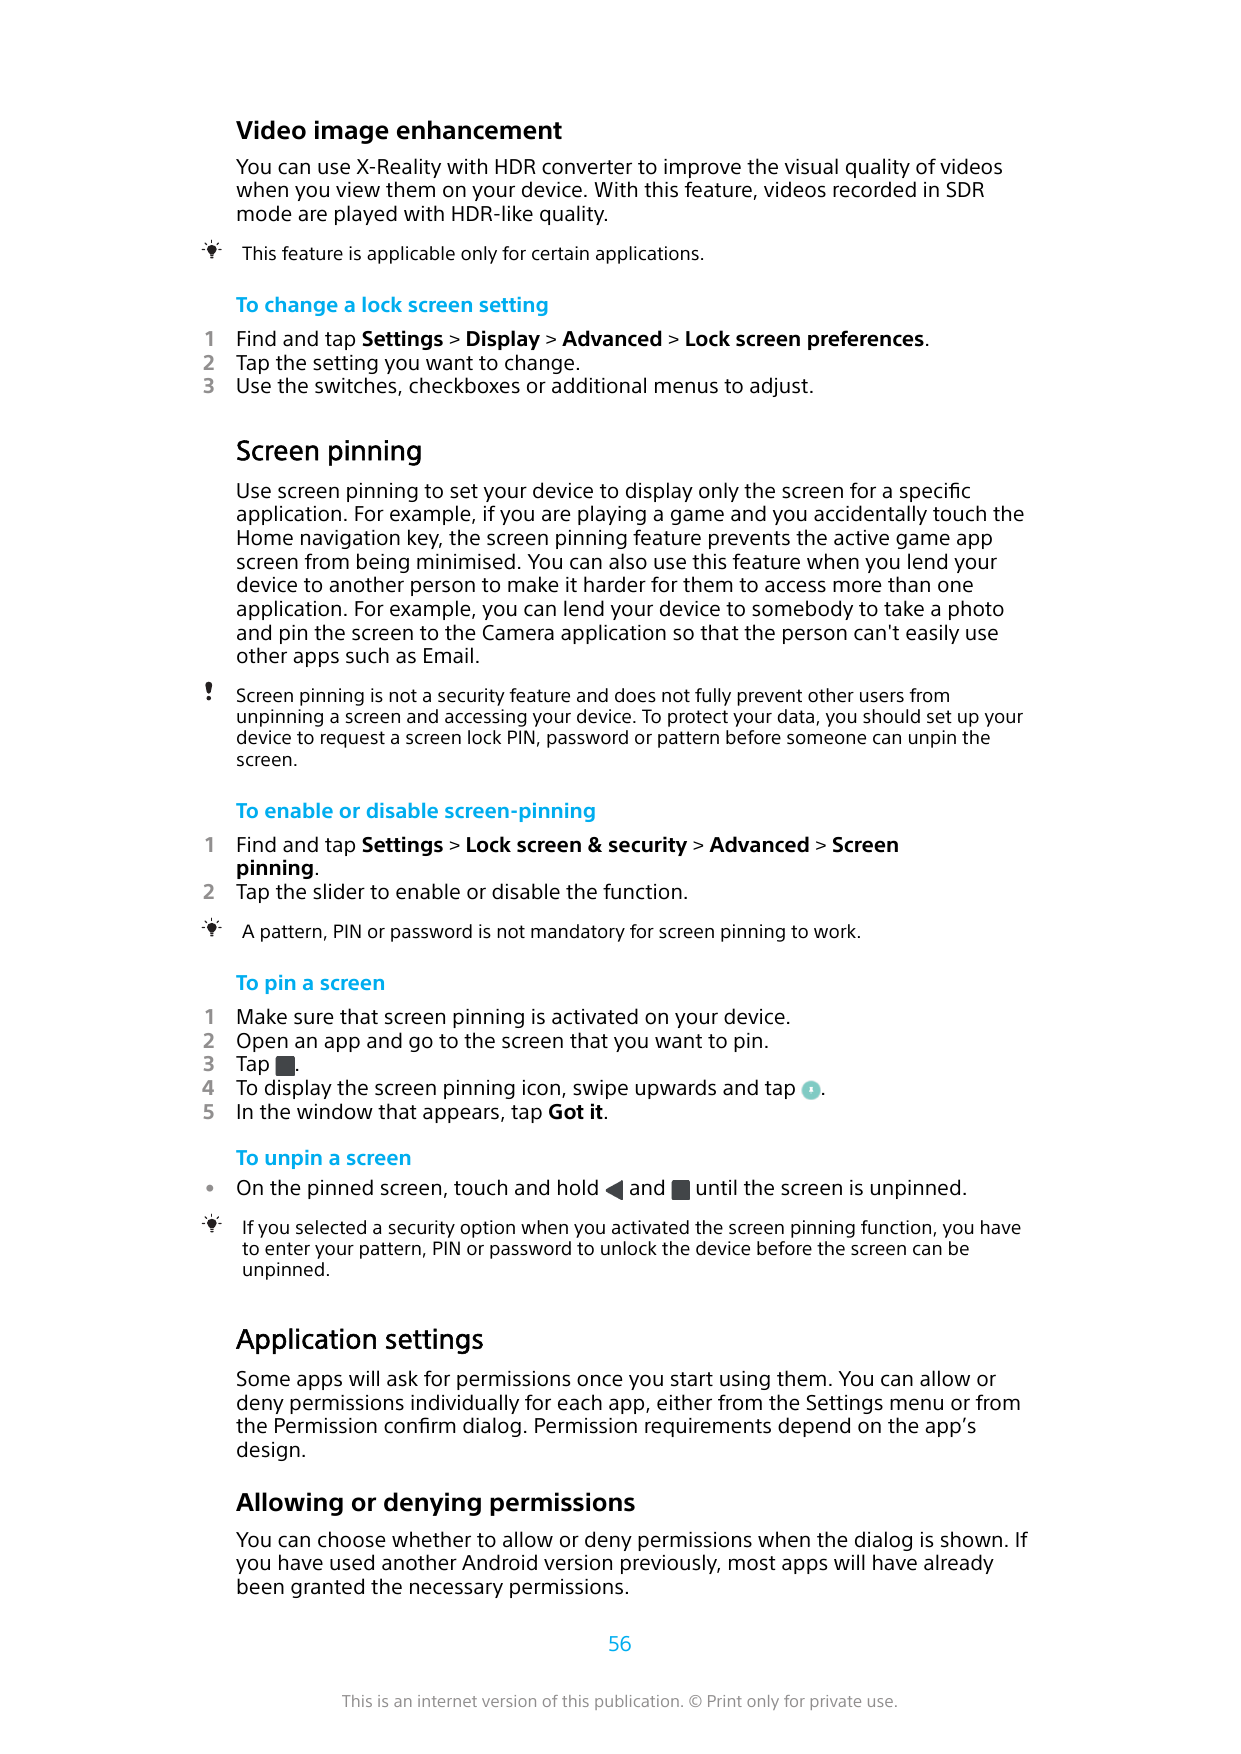 Manual - Sony Xperia XZ1 - Android 9 0 - Smart Guides